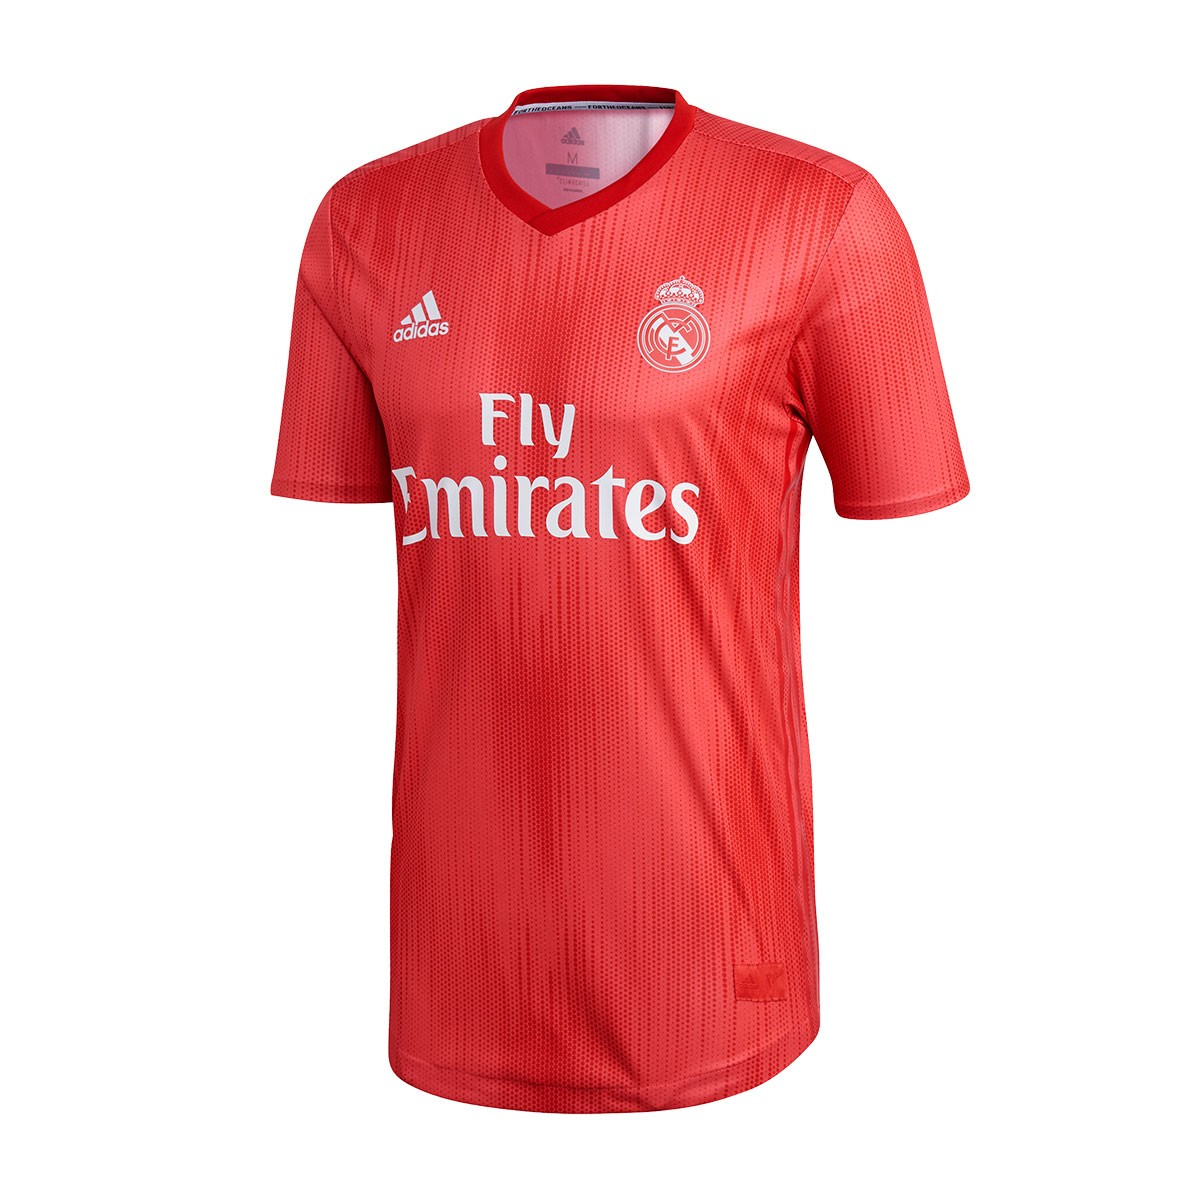 e7a15ac7b63c0 Playera adidas Real Madrid Tercera Equipación Authentic 2018-2019 Real  coral-Vivid red - Tienda de fútbol Fútbol Emotion